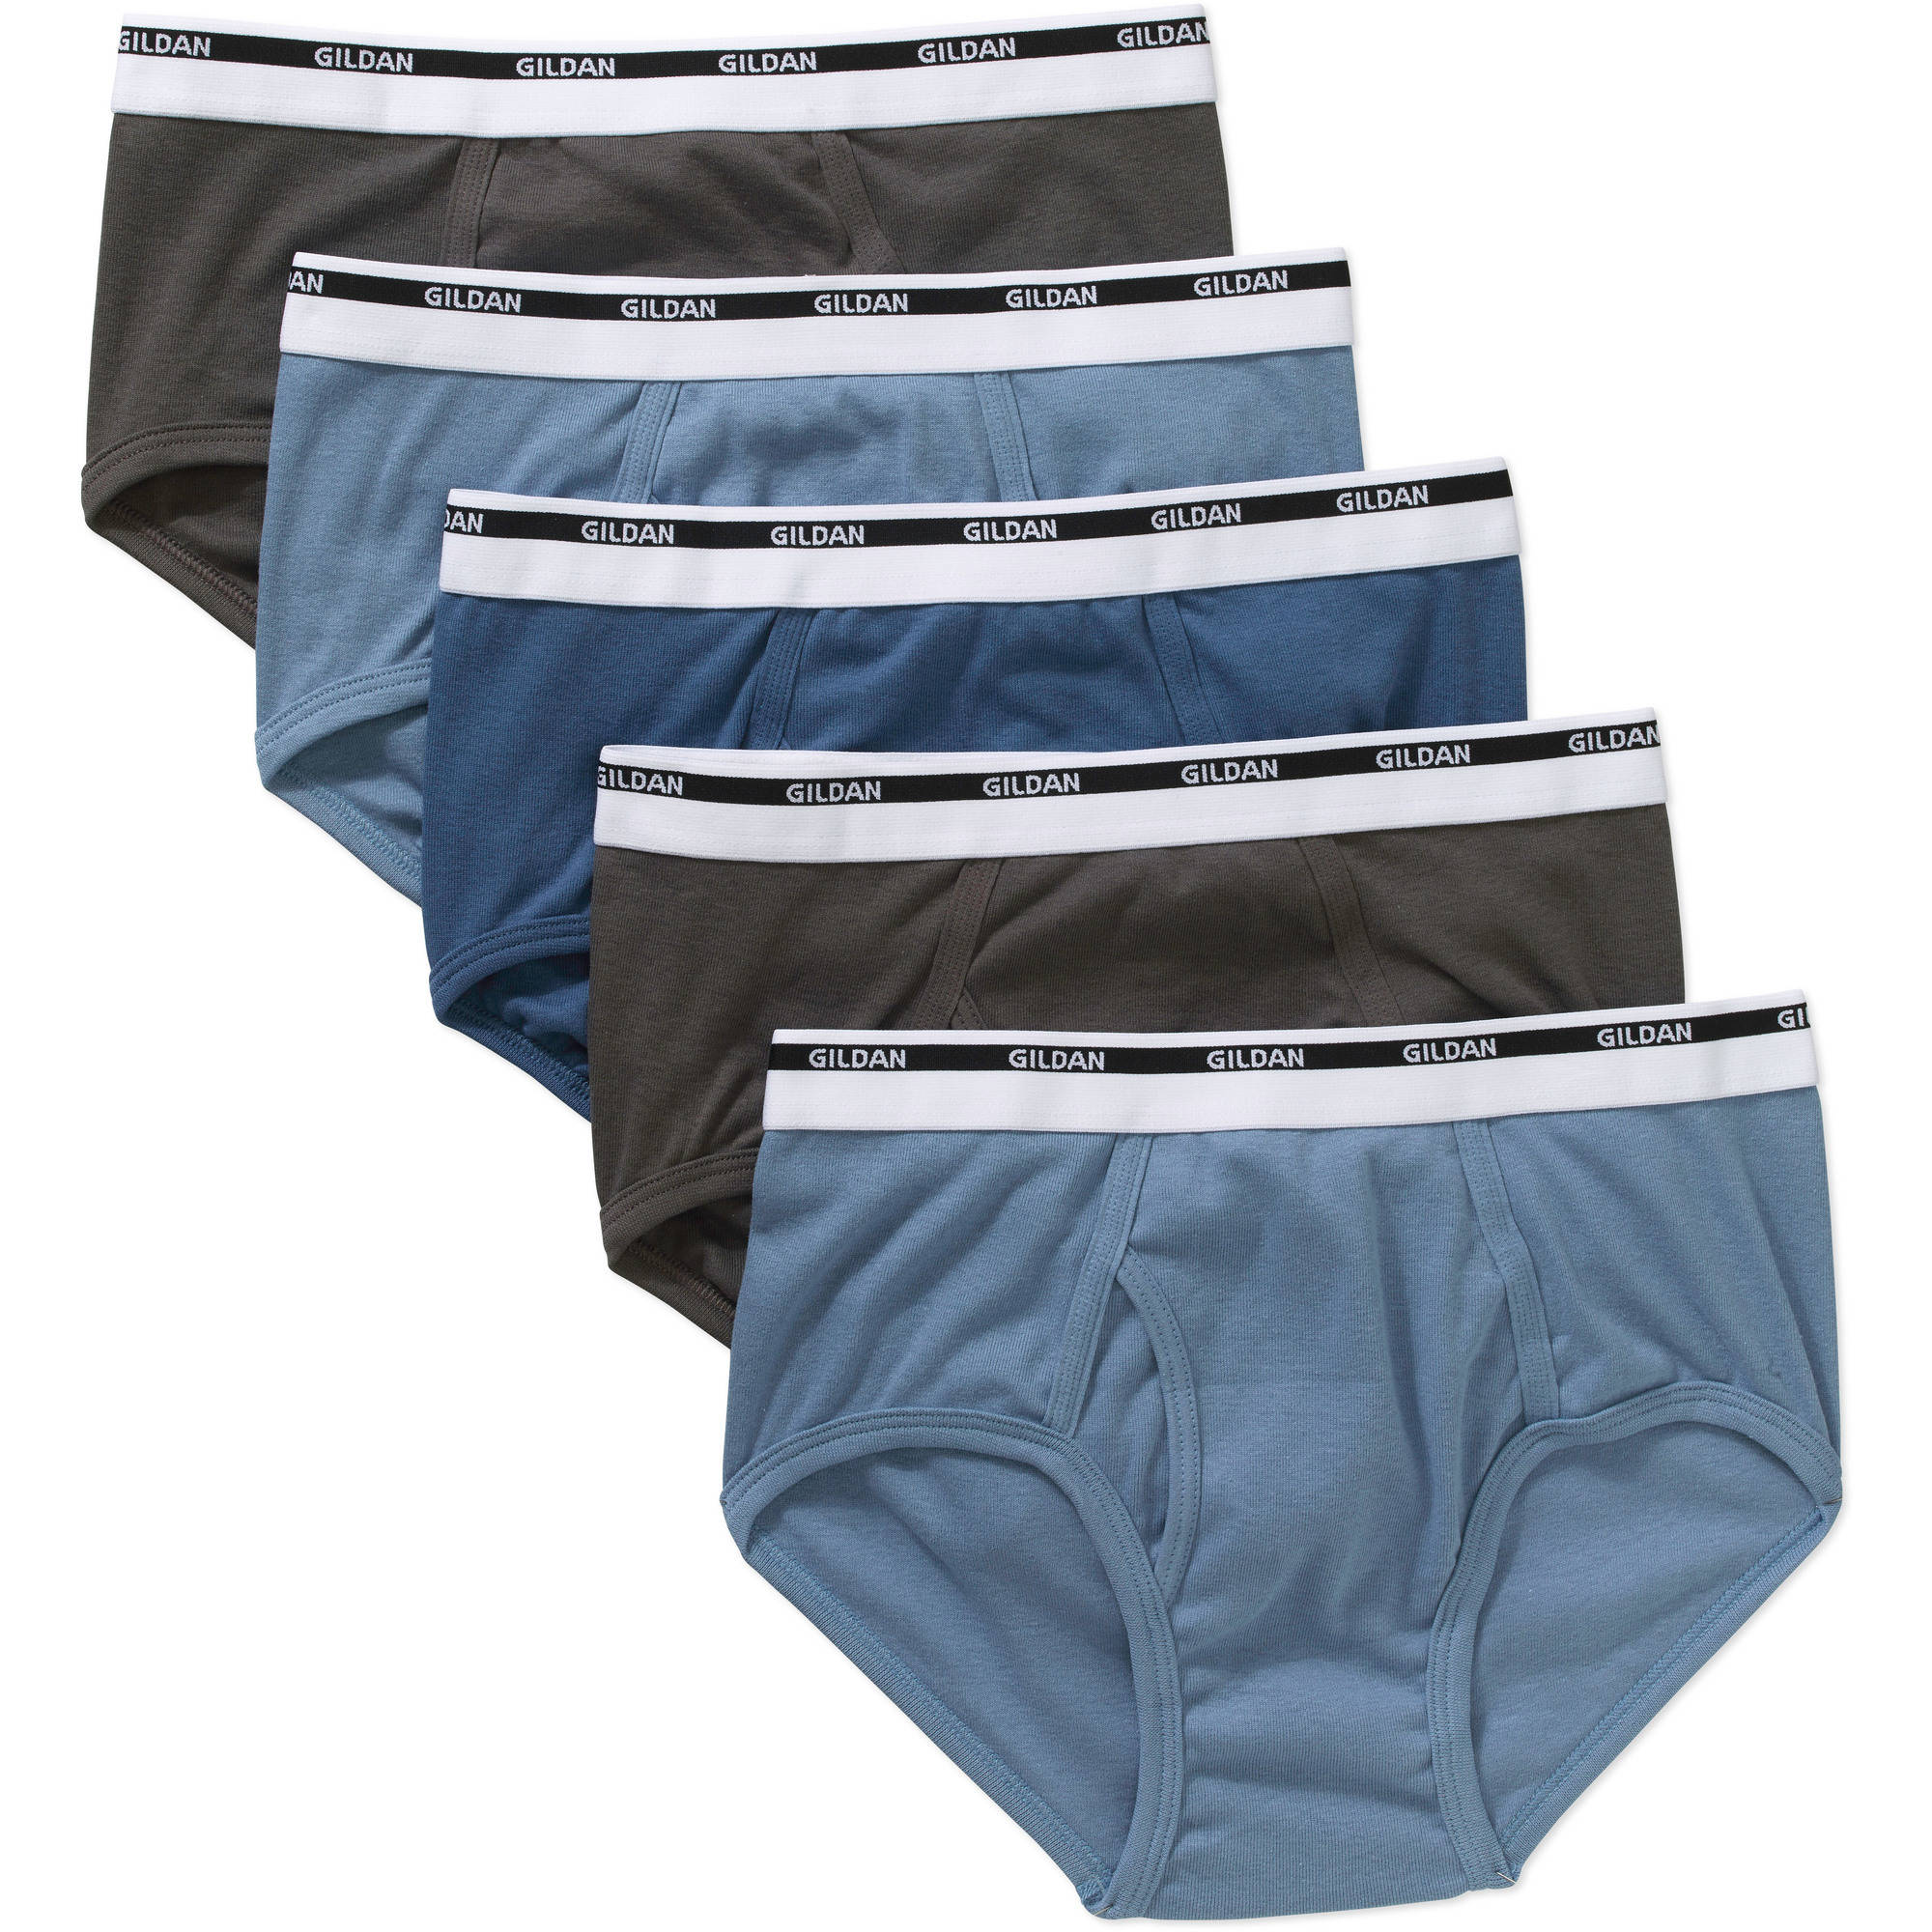 Gildan Men's 5 Pack Brief